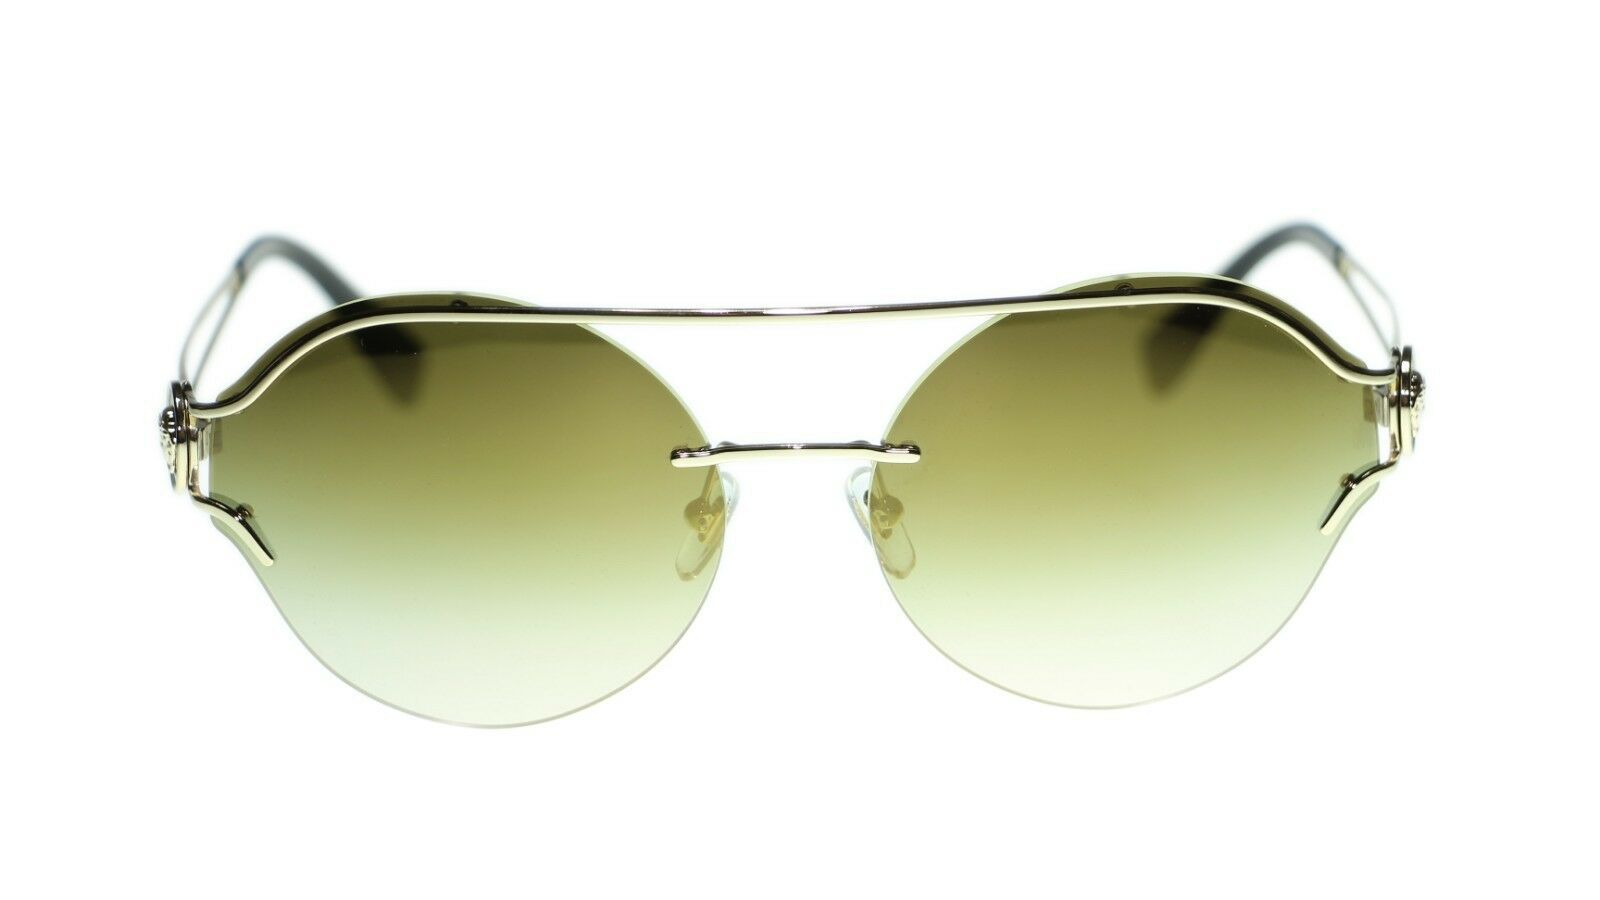 Versace Round Sunglasses VE2184 12526U Pale Gold Green Lens 61mm